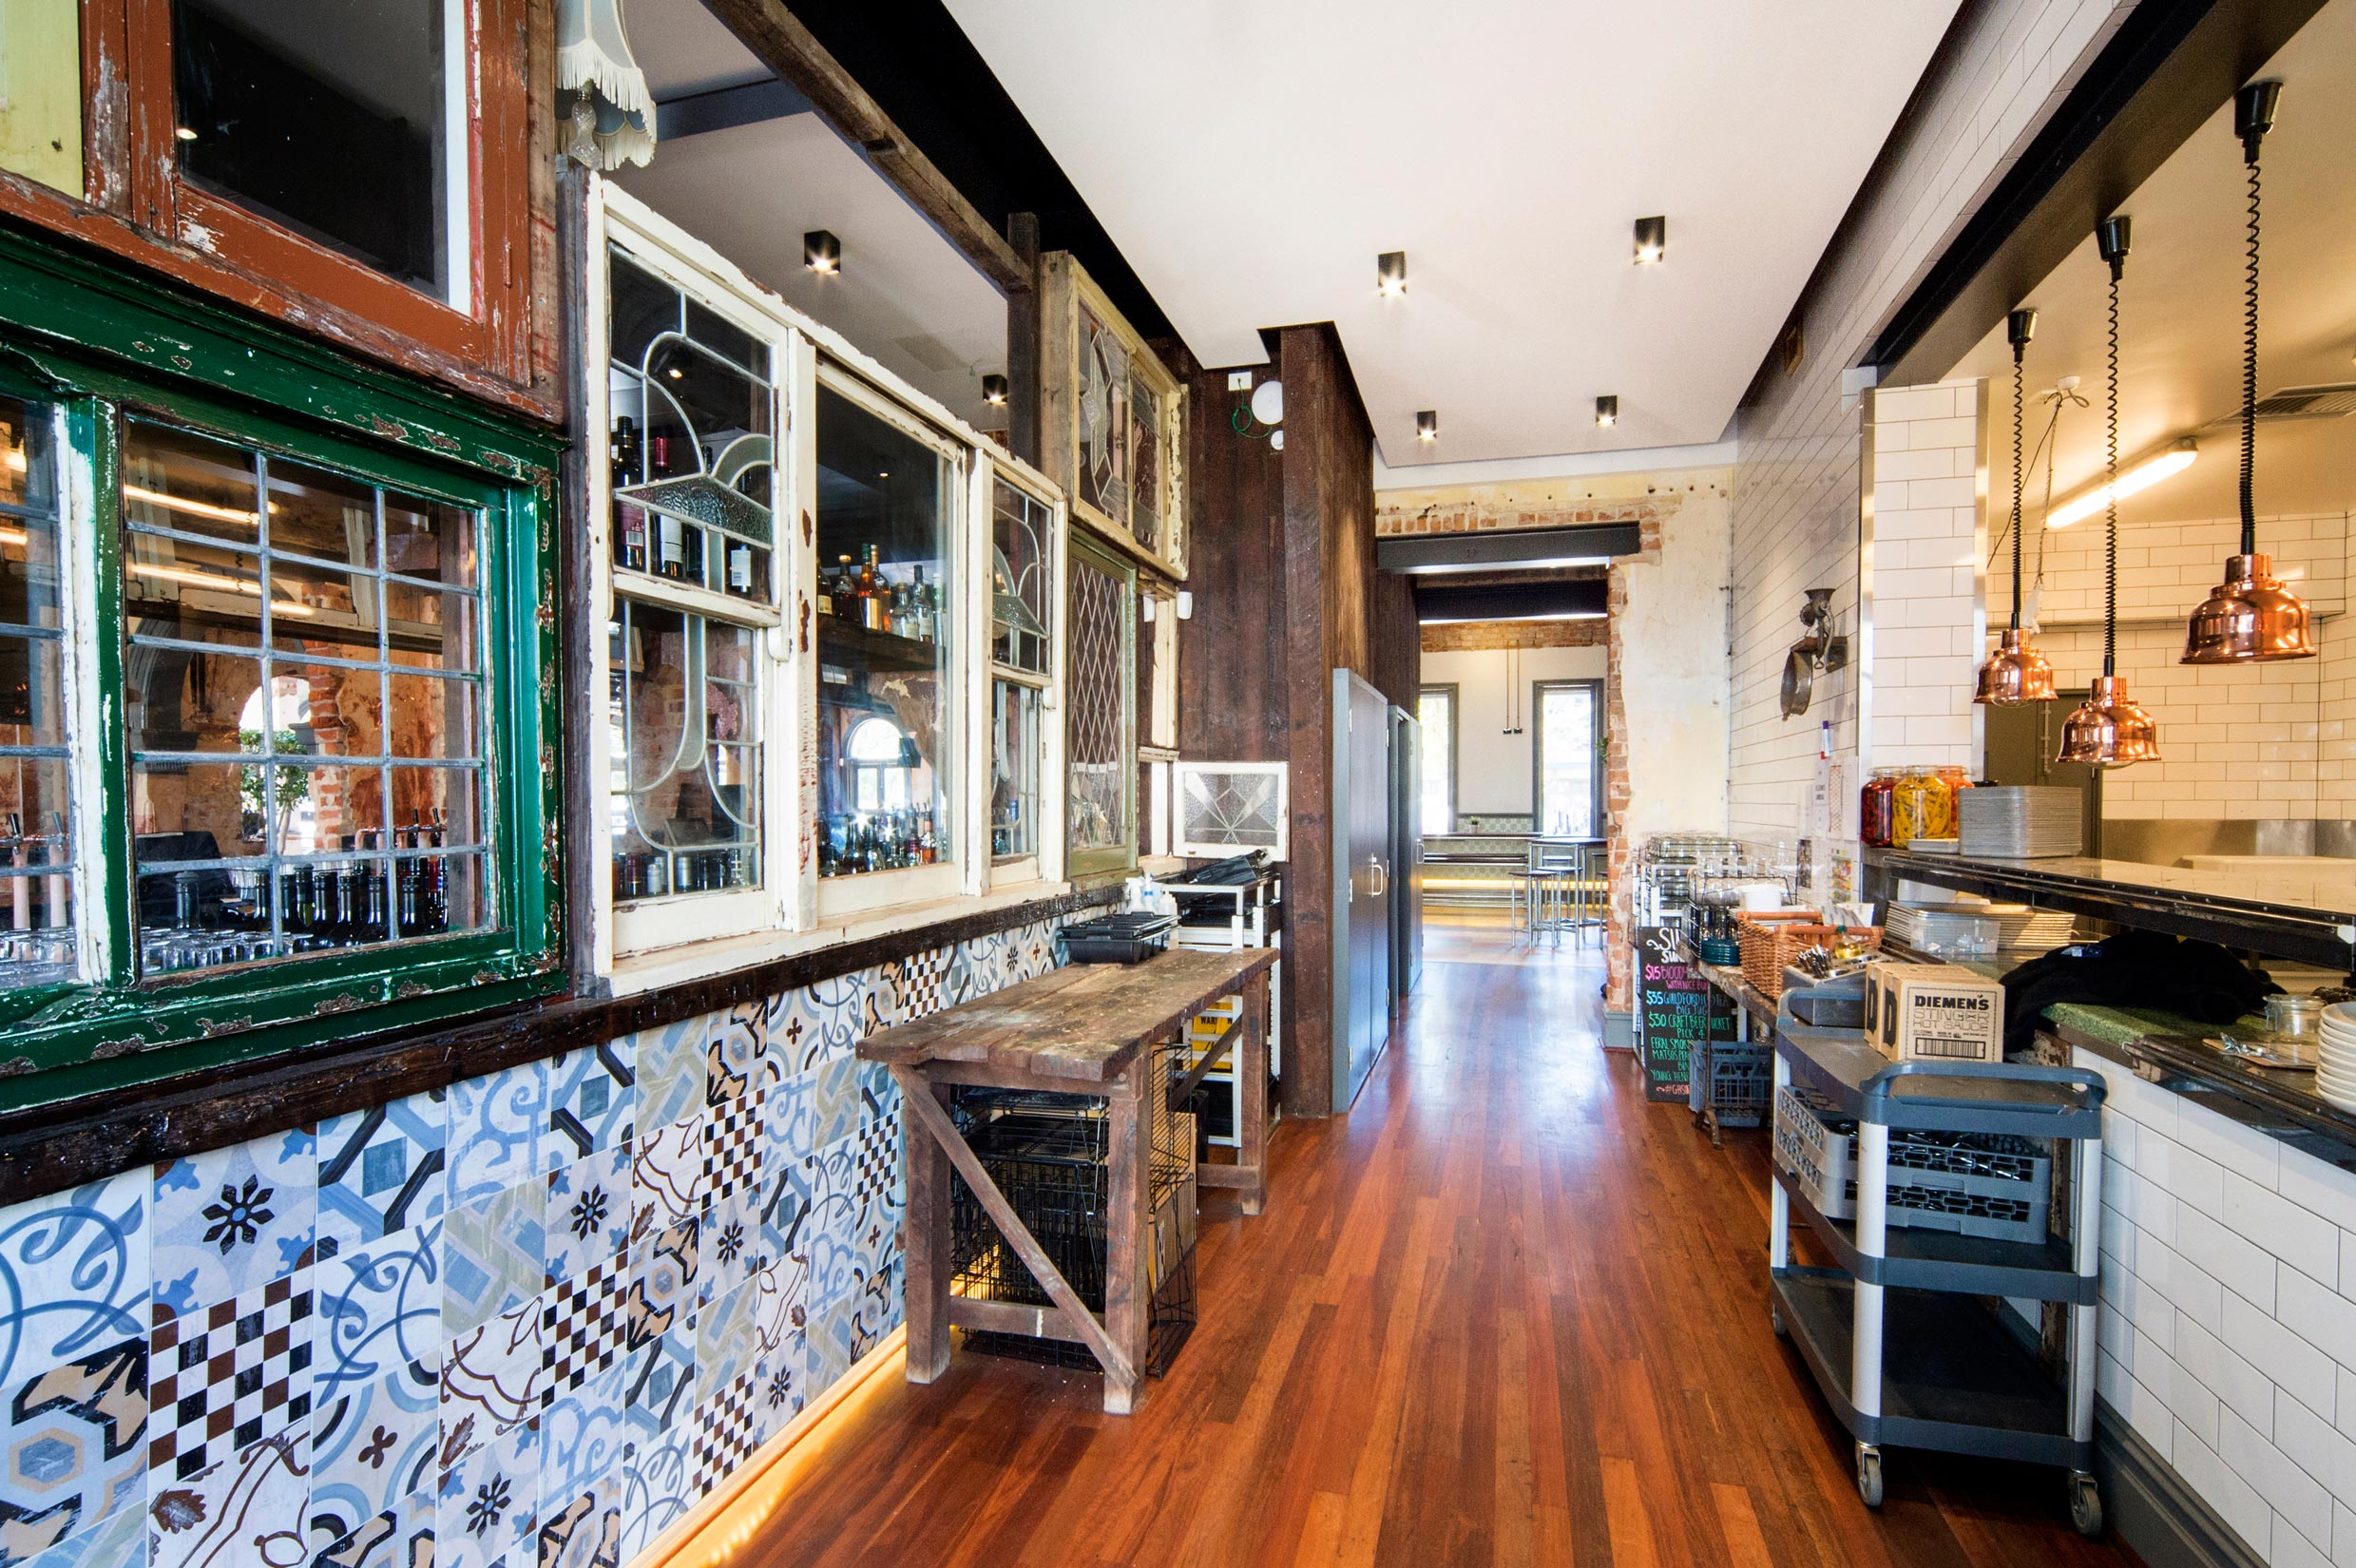 The Guildford Hotel heritage kitchen with timber floors, tiled walls and heritage windows